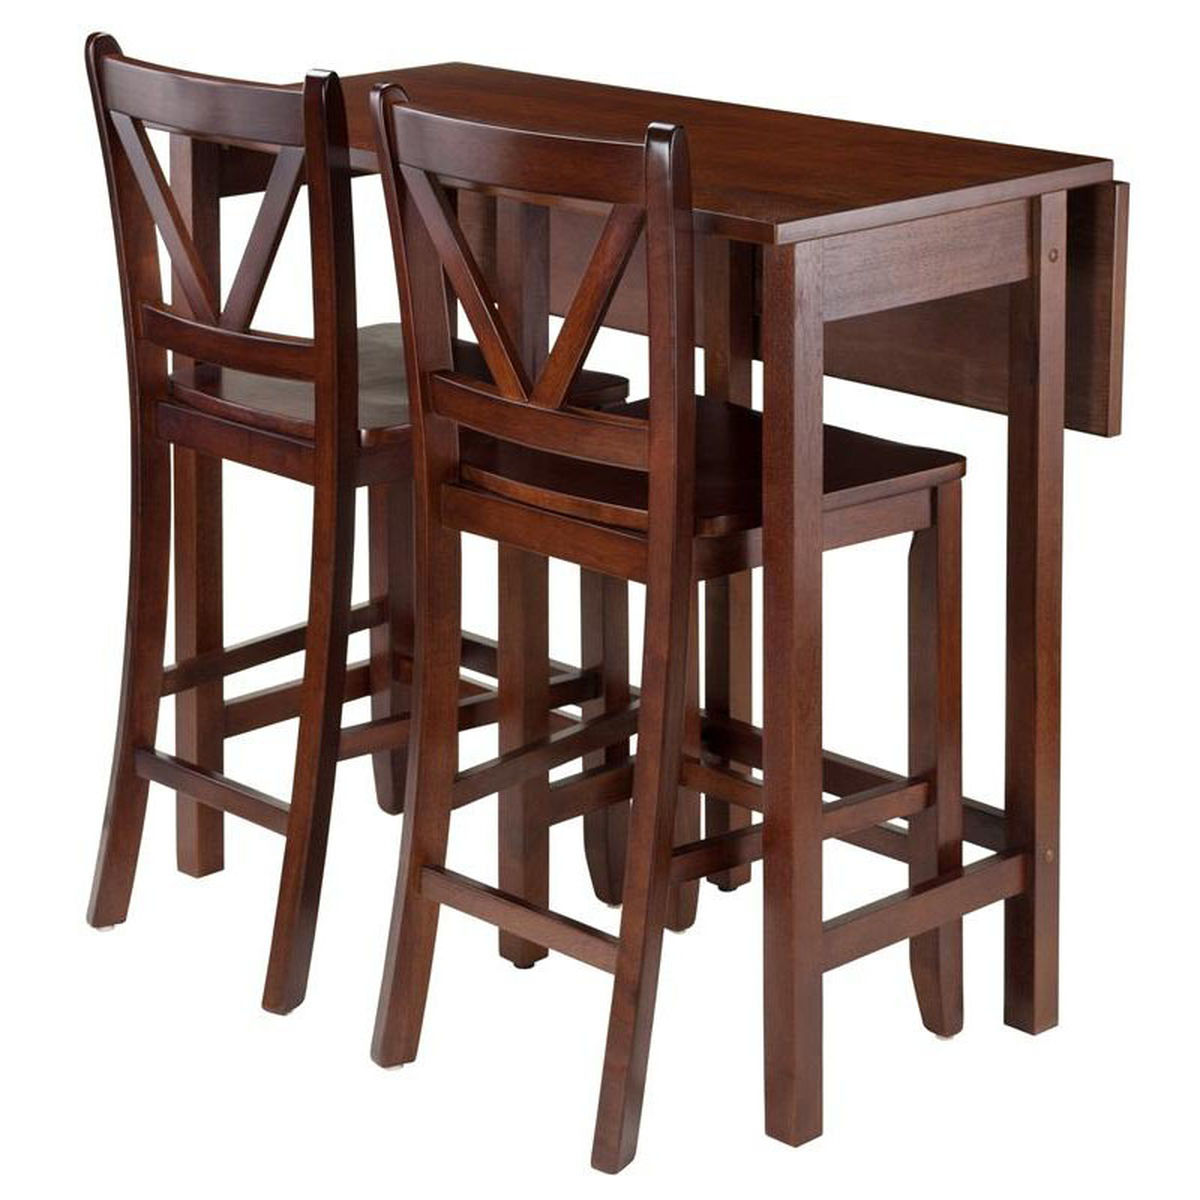 drop leaf dining table set bizchair winsome wood wwt accent walnut our lynnwood with and counter stools pottery barn rattan coffee wicker side indoor wooden room chairs battery